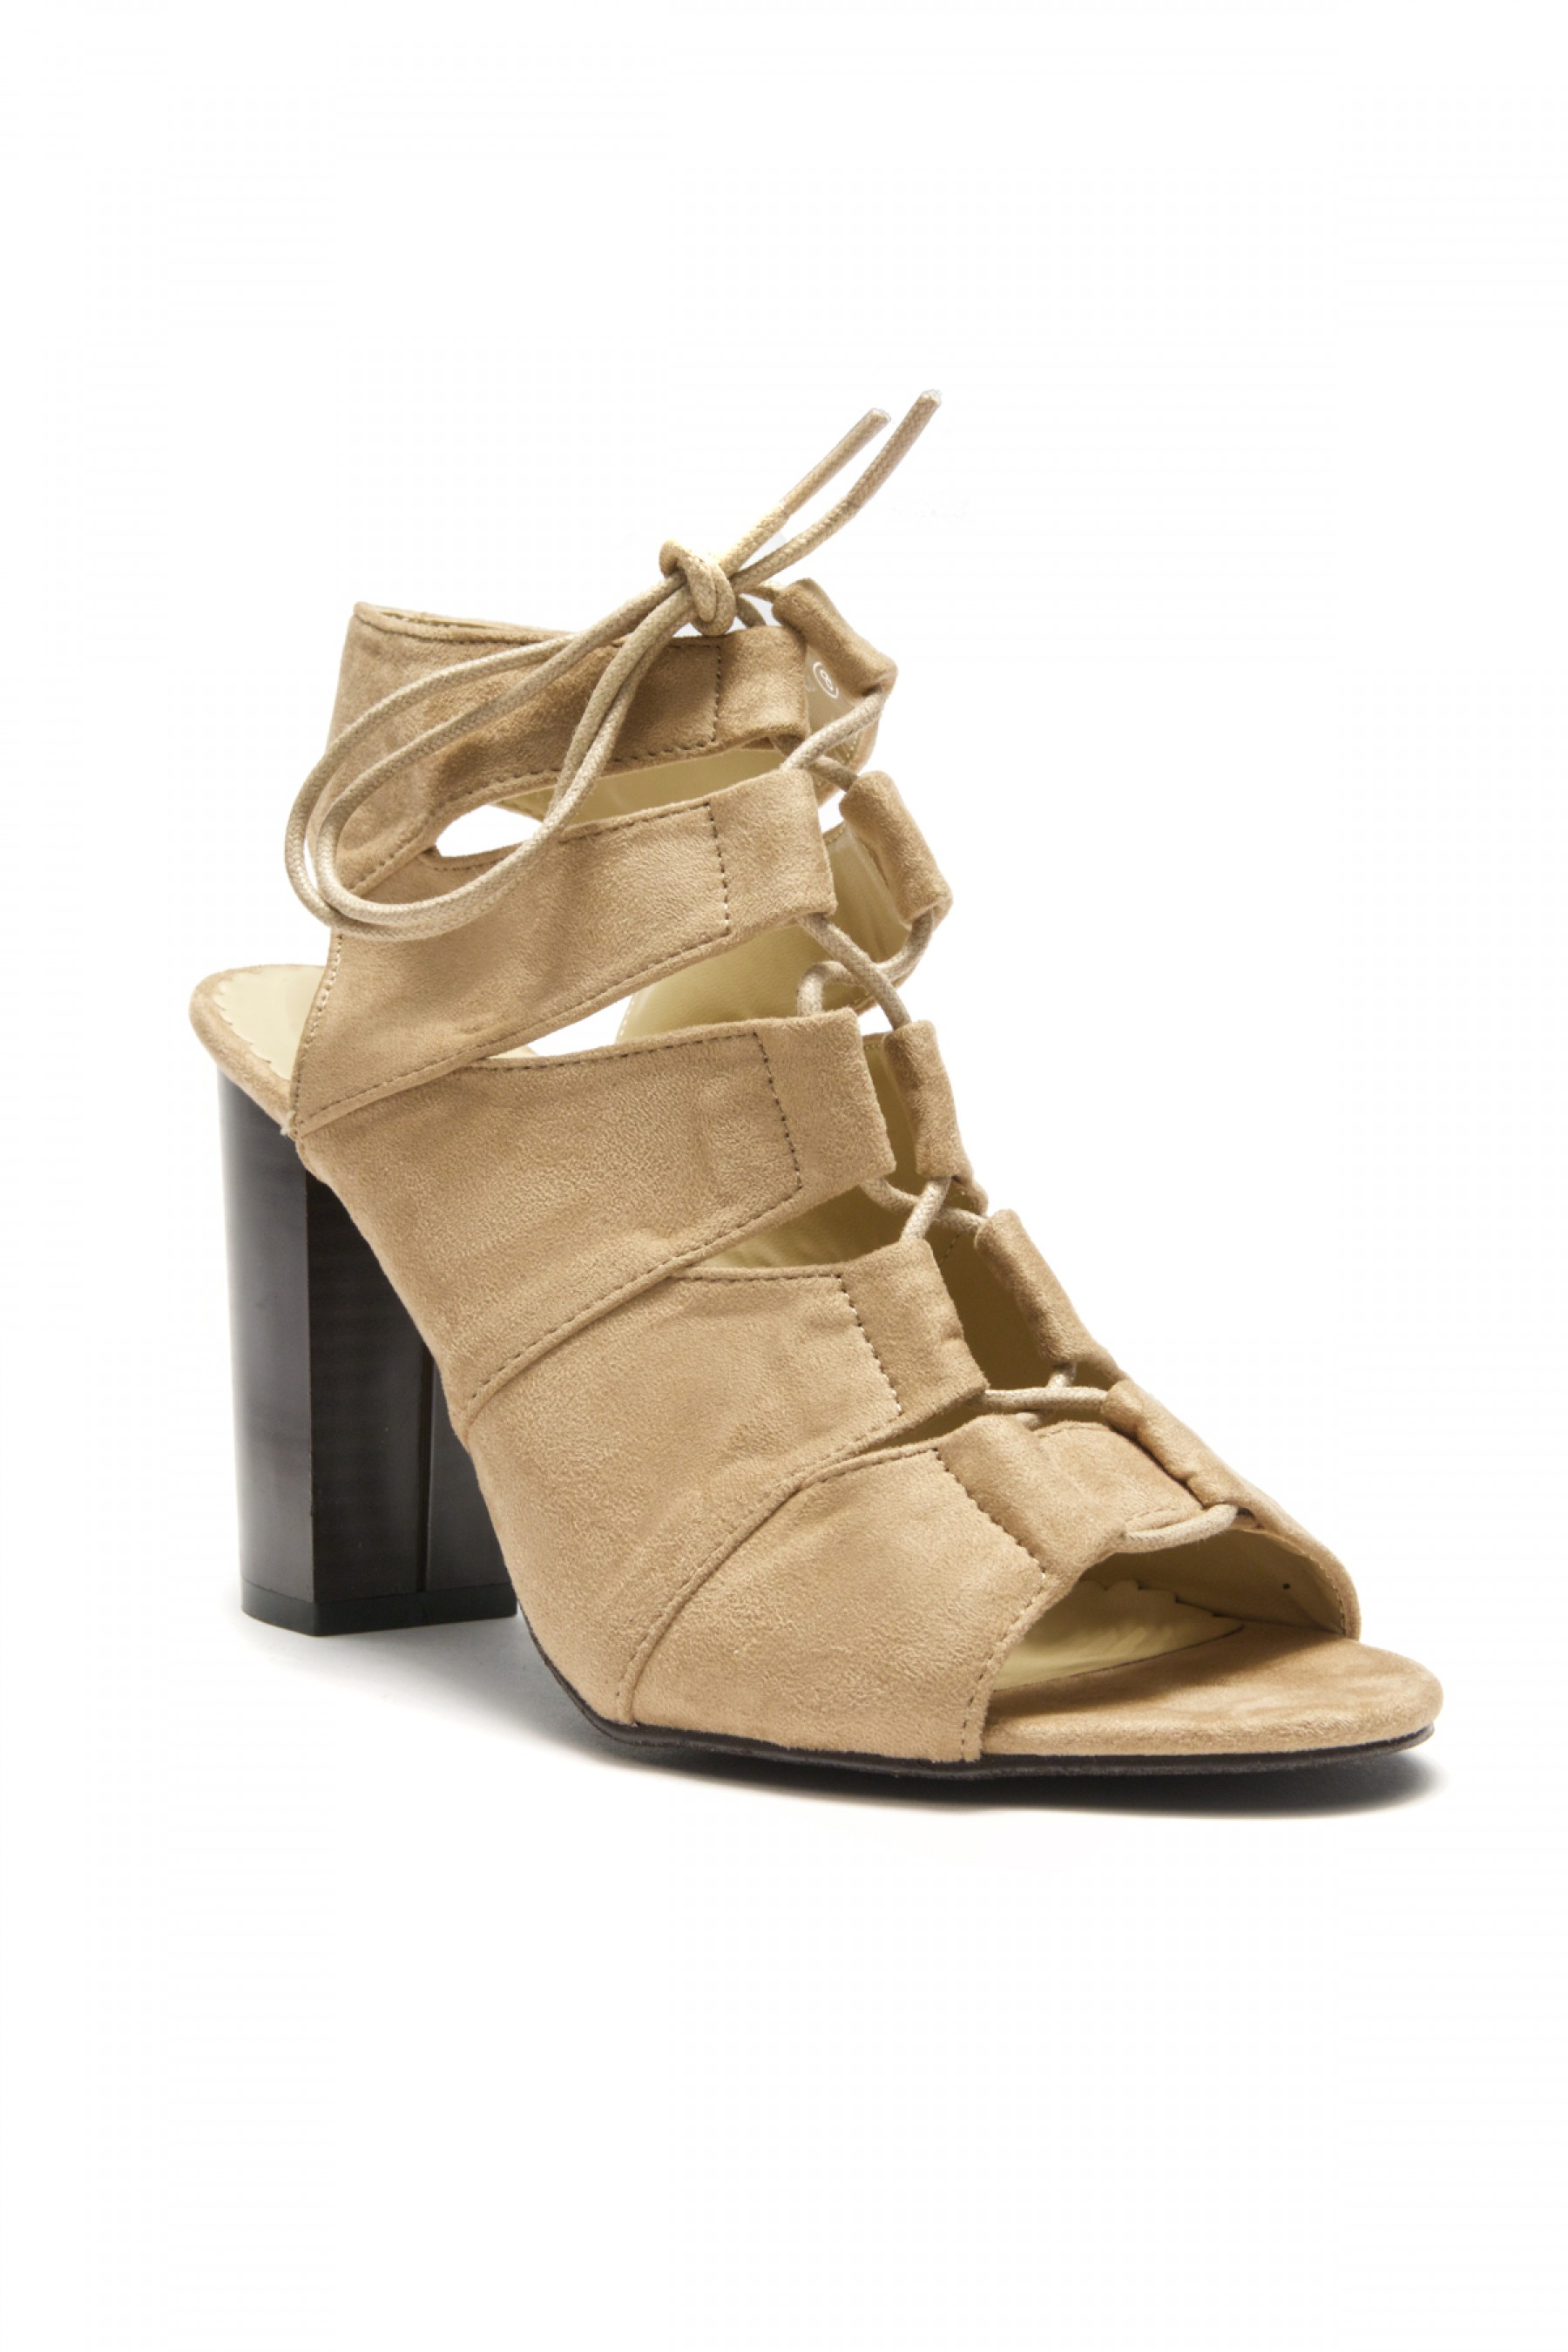 HerStyle Carnibbi open toe, chunky heel, a gladiator inspired strappy with front lace-up (Tan)